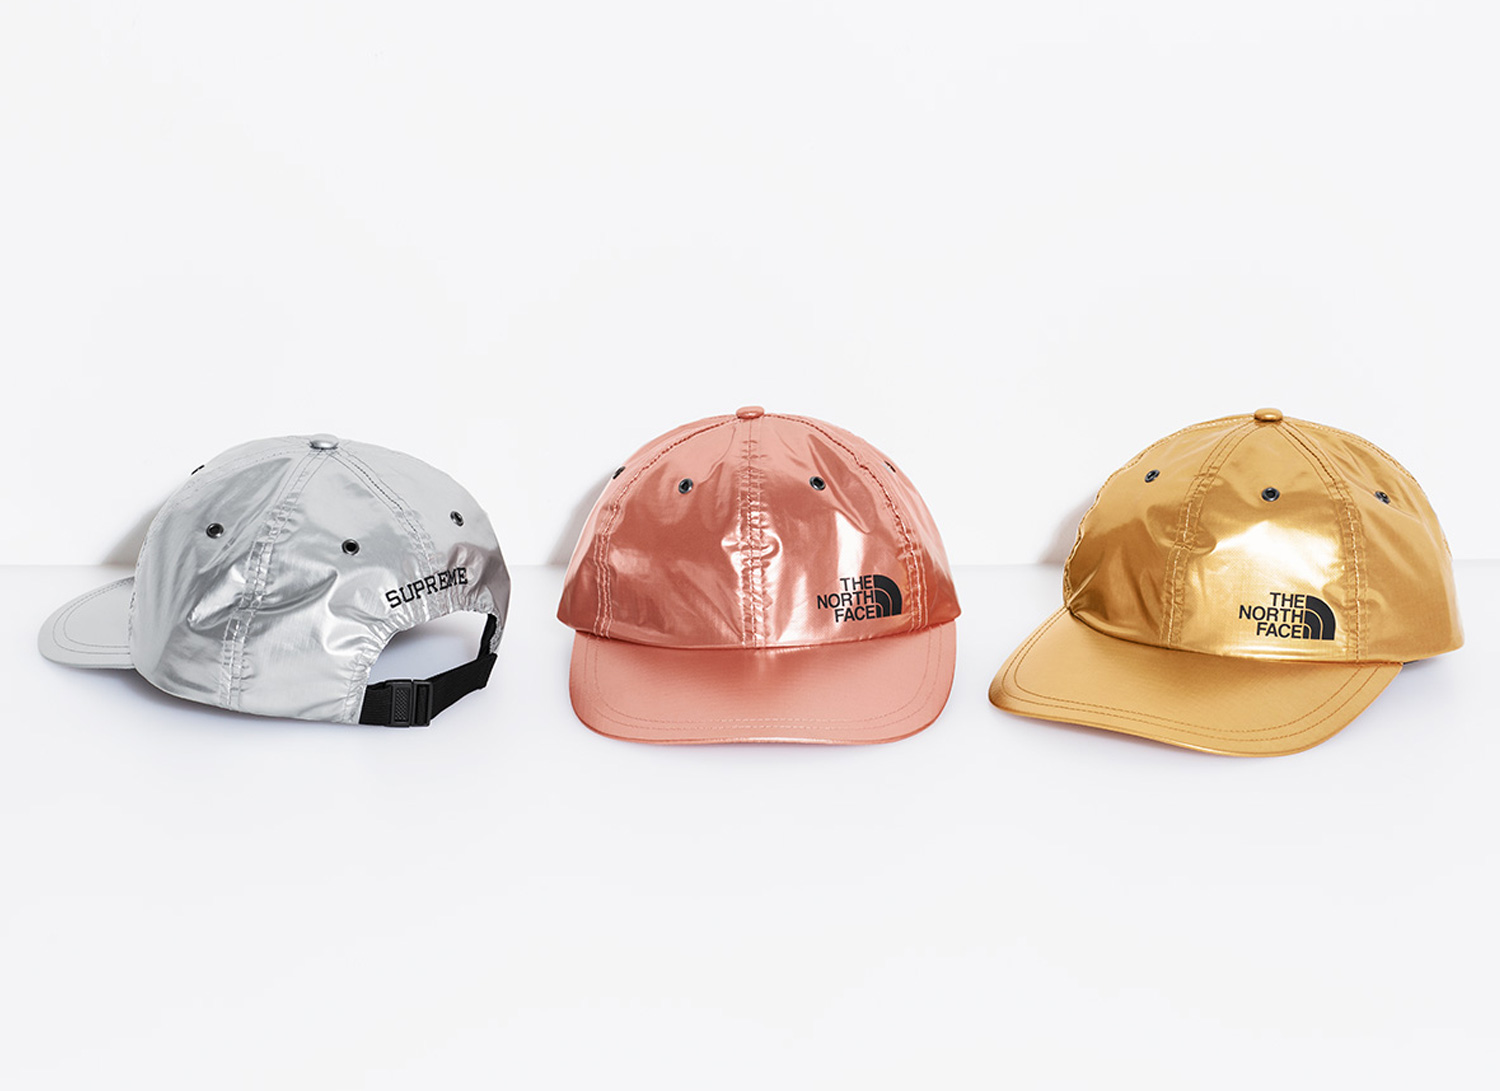 Supreme®/The North Face® Metallic 6-Panel Hat